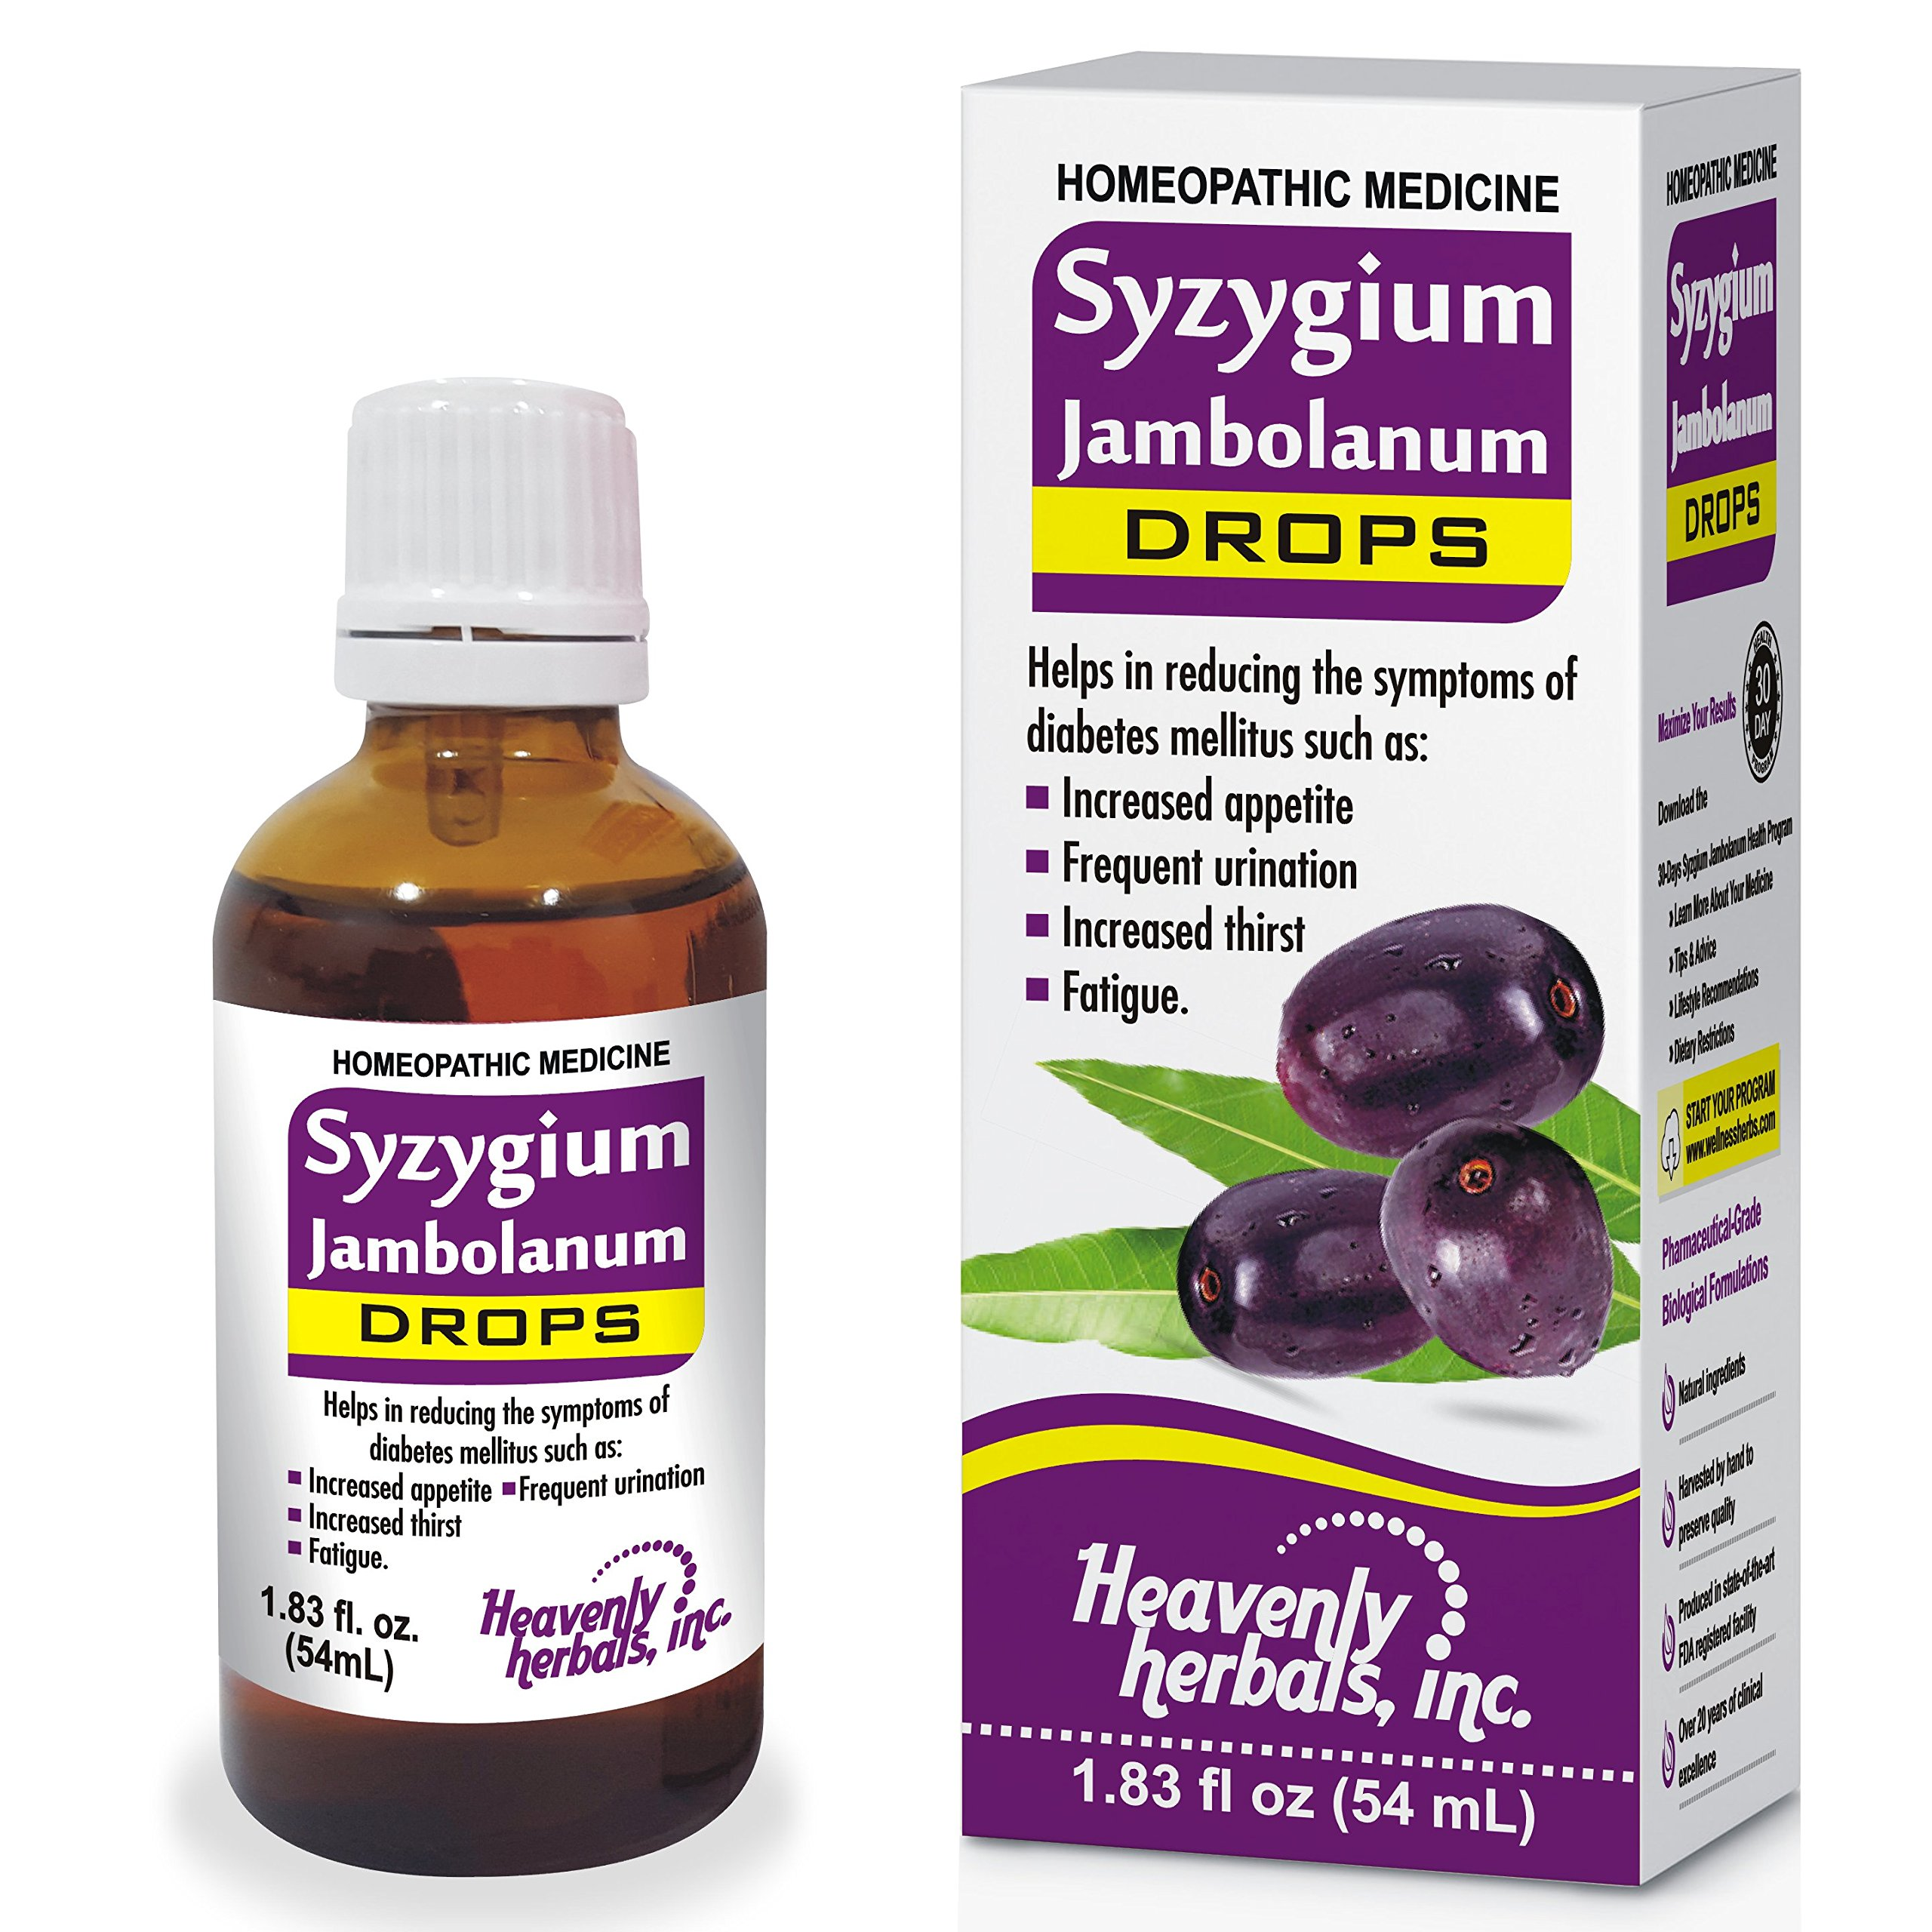 Syzygium Jambolanum Drops – for Frequent Urination, Increased Hunger, Fatigue | Regulates Blood Sugar Levels - Homeopathic Natural Alternative – 1.83Fl Oz by Heavenly Herbals, Inc.